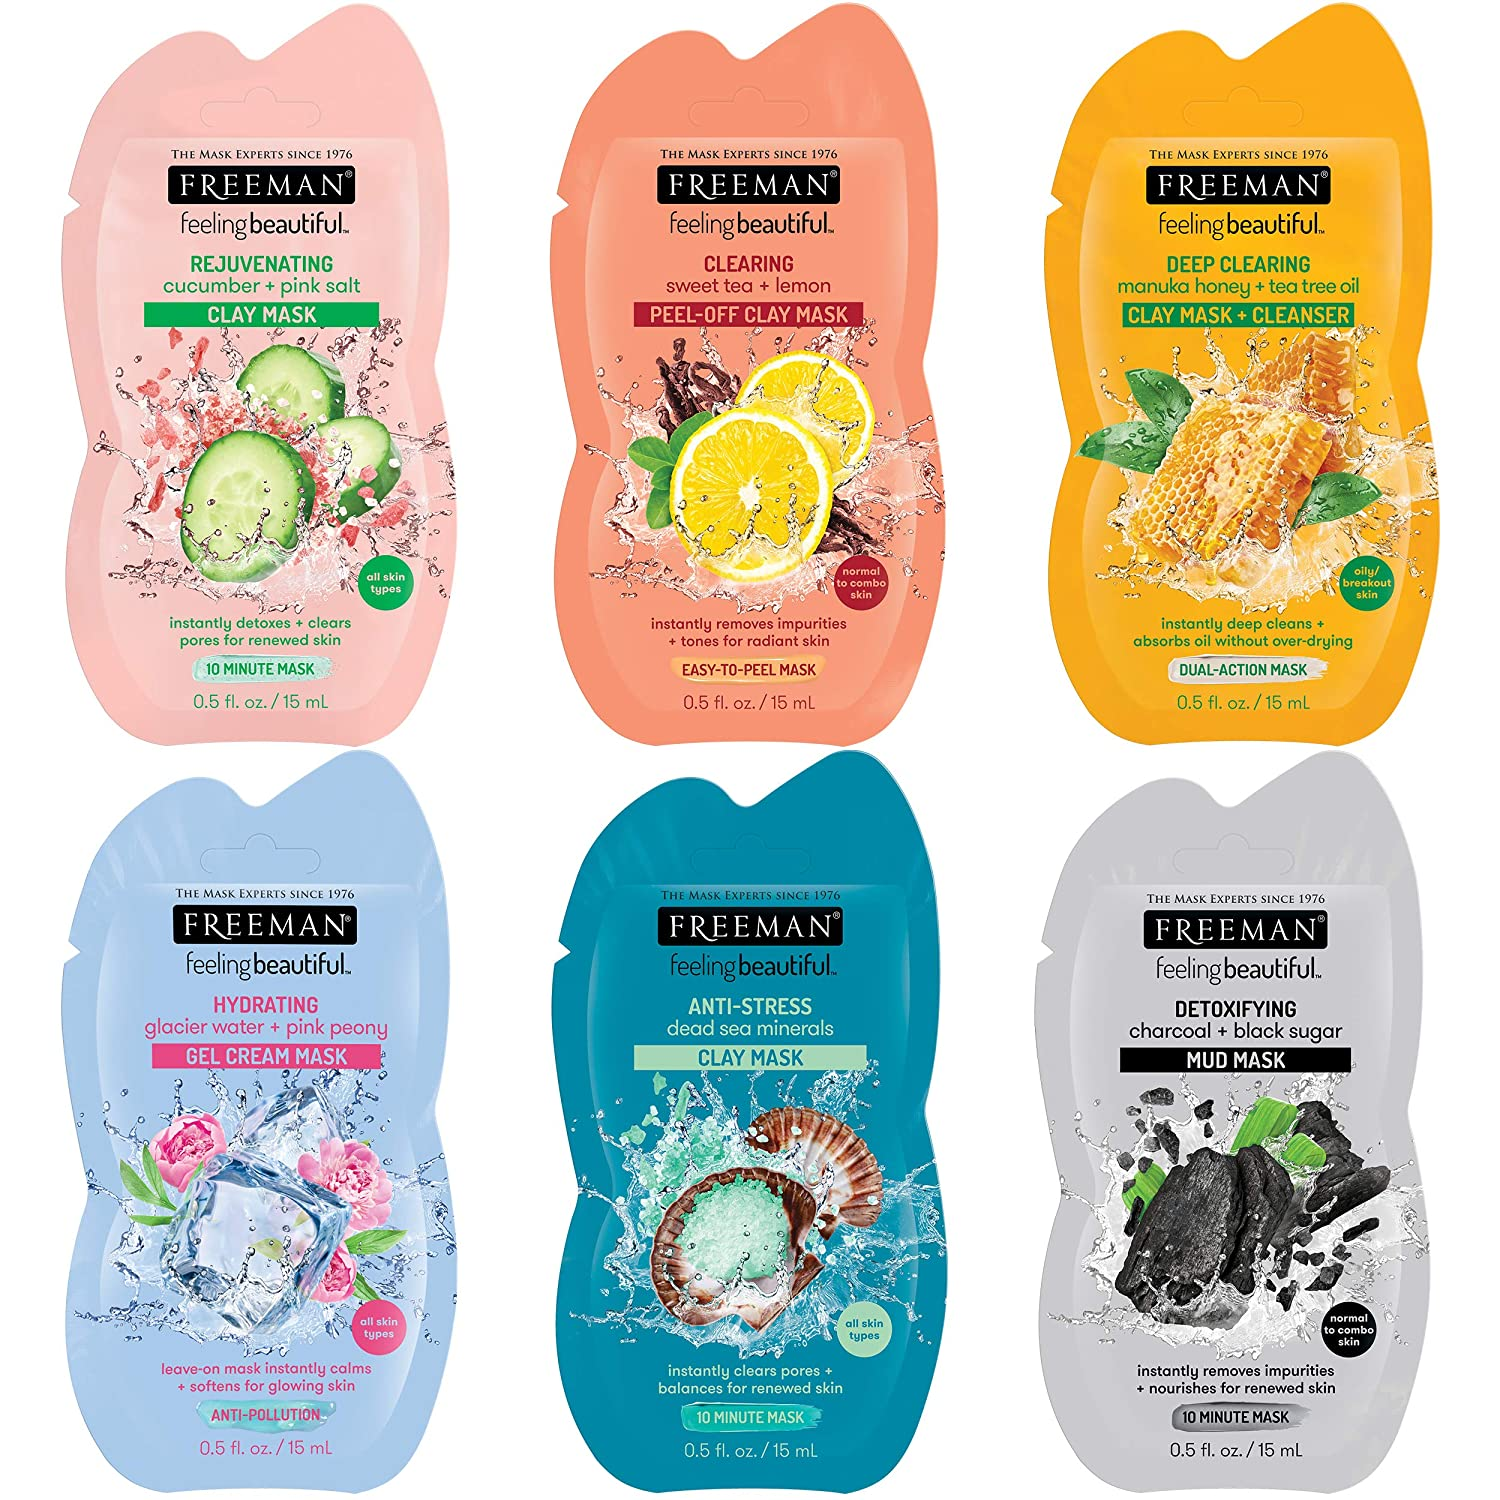 Freeman Mask Variety Collection (Pack of 6) - Anti-Stress Clay, Clearing Peel-Off, Deep Cleanser, Hydrating Gel, Detoxifying Mud